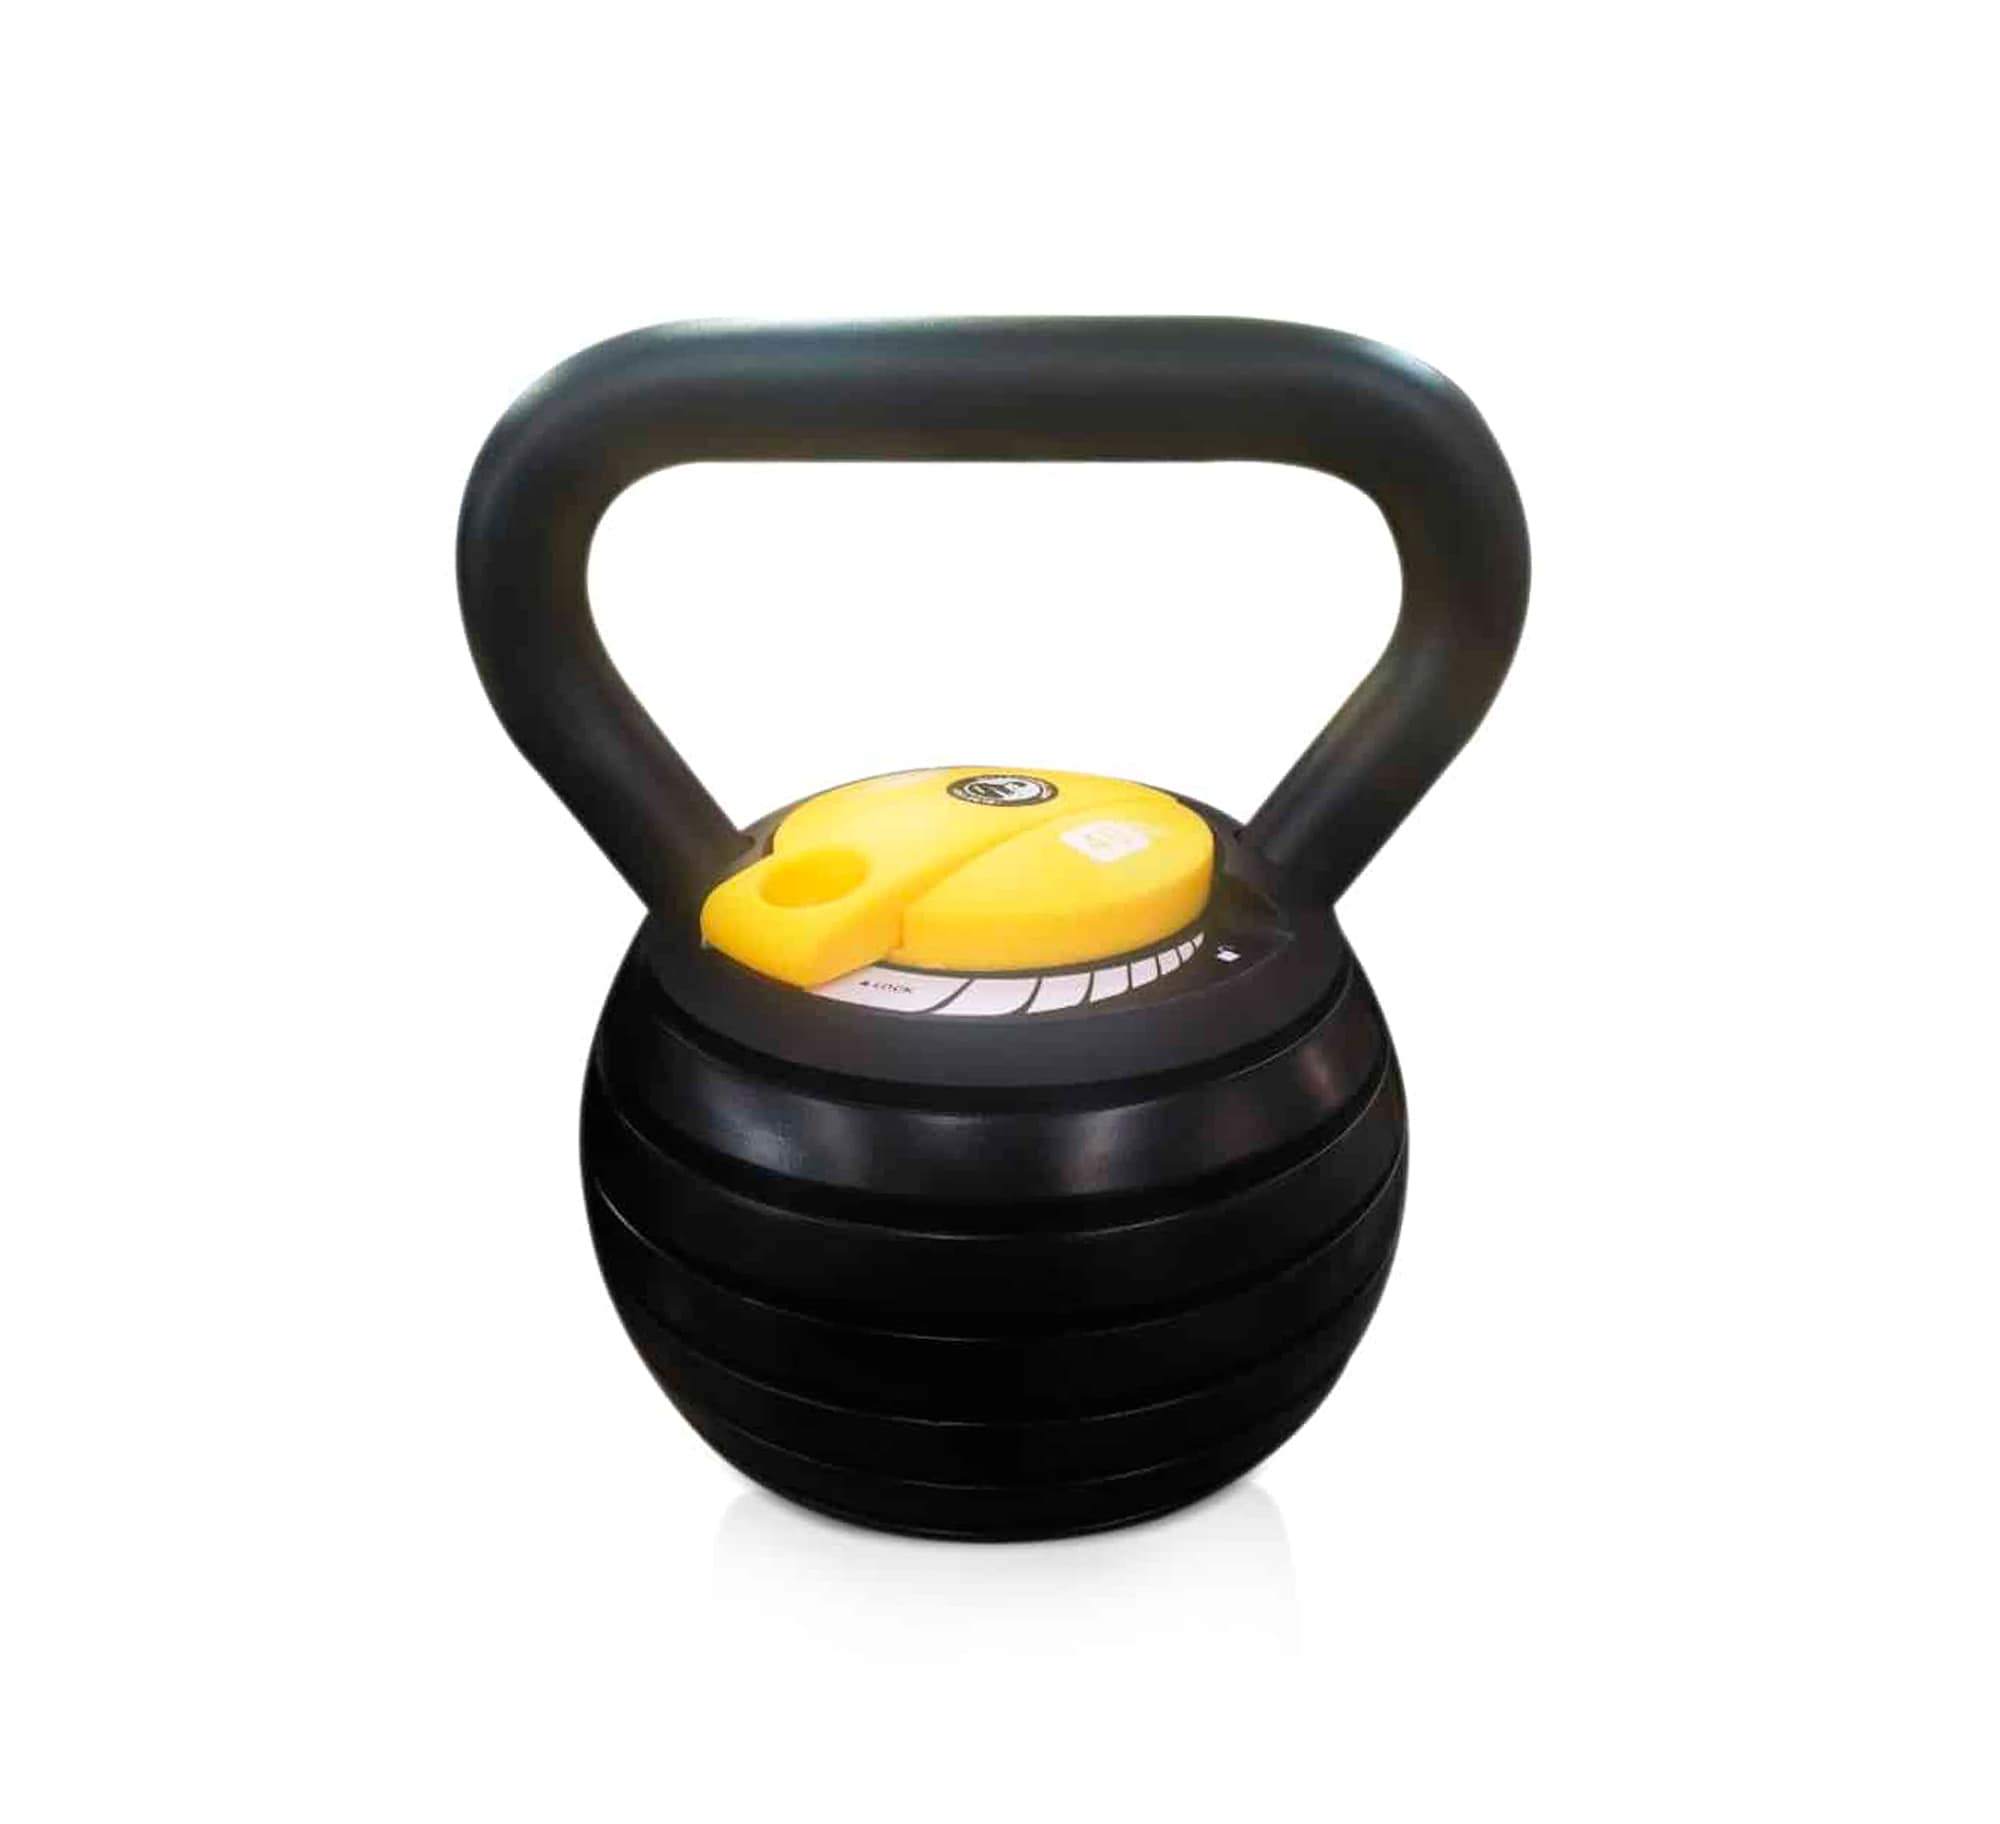 10 to 40lb adjustable kettlebell